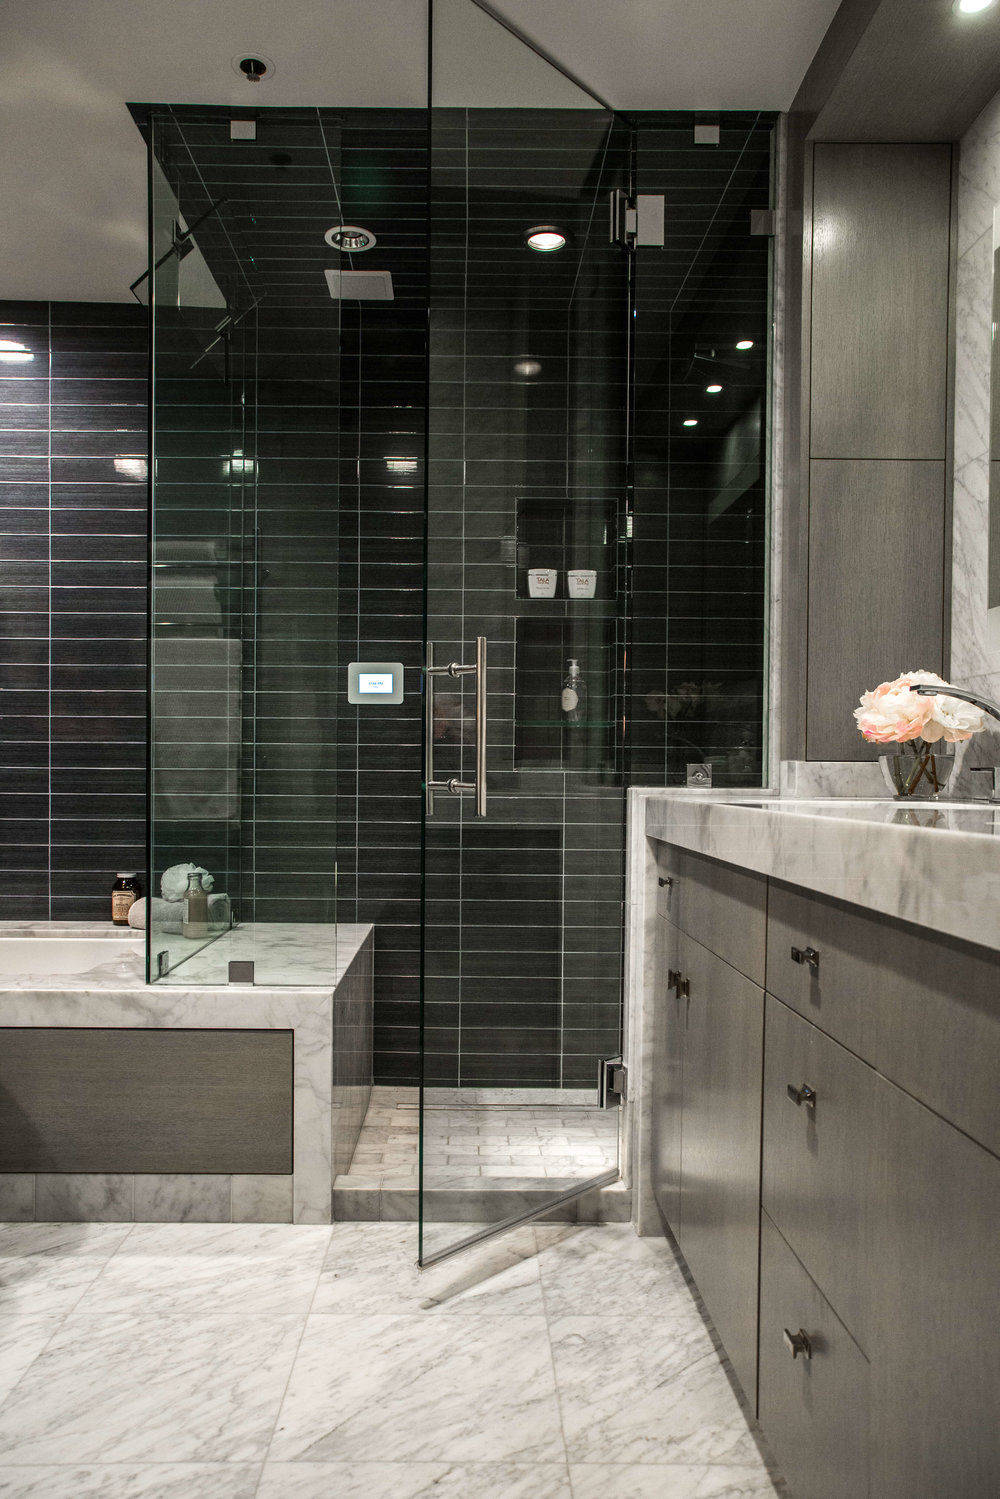 11 Simple Ways To Make A Small Bathroom Look Bigger Designed